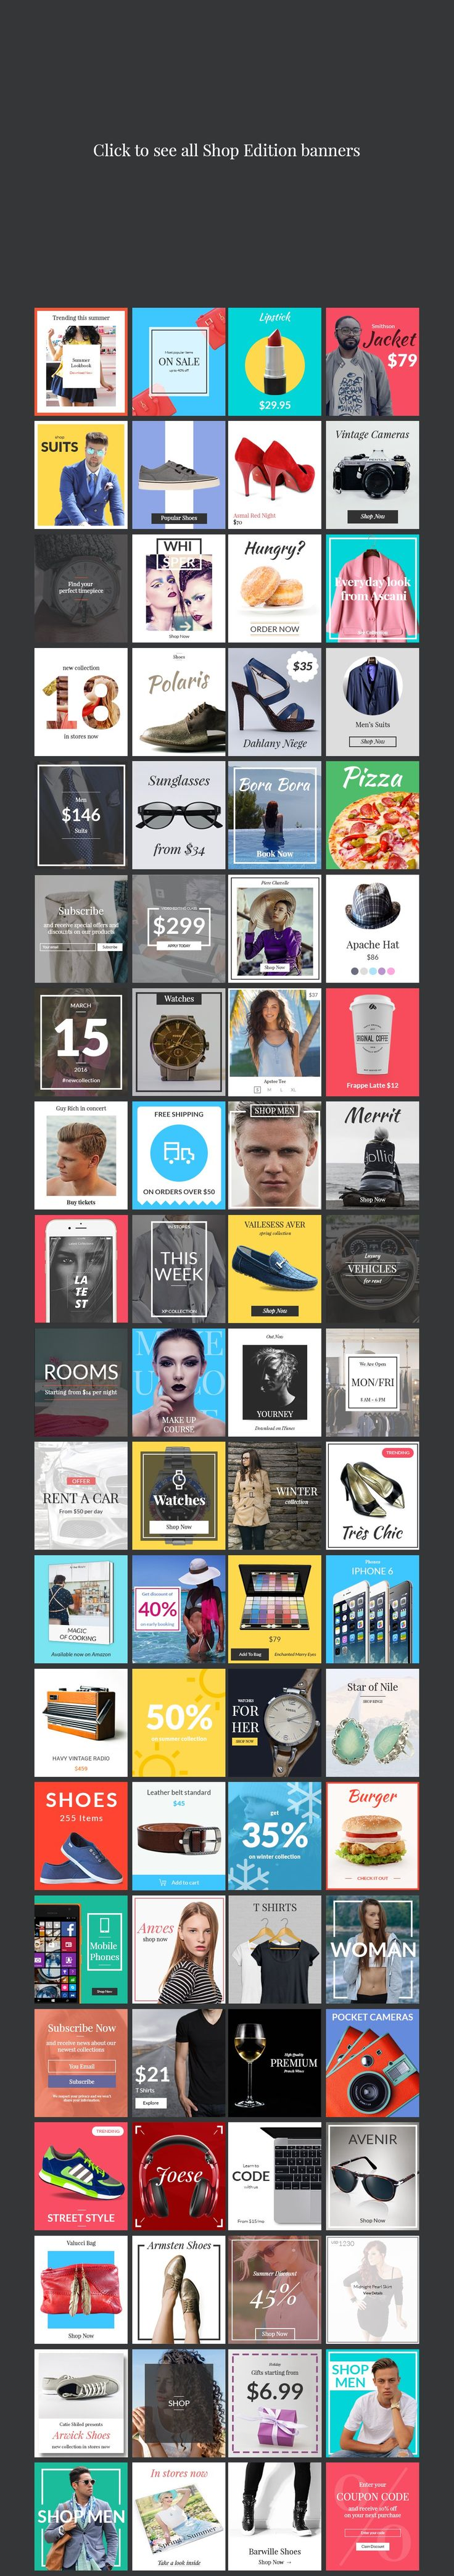 240 Banners Pack – SiteUp